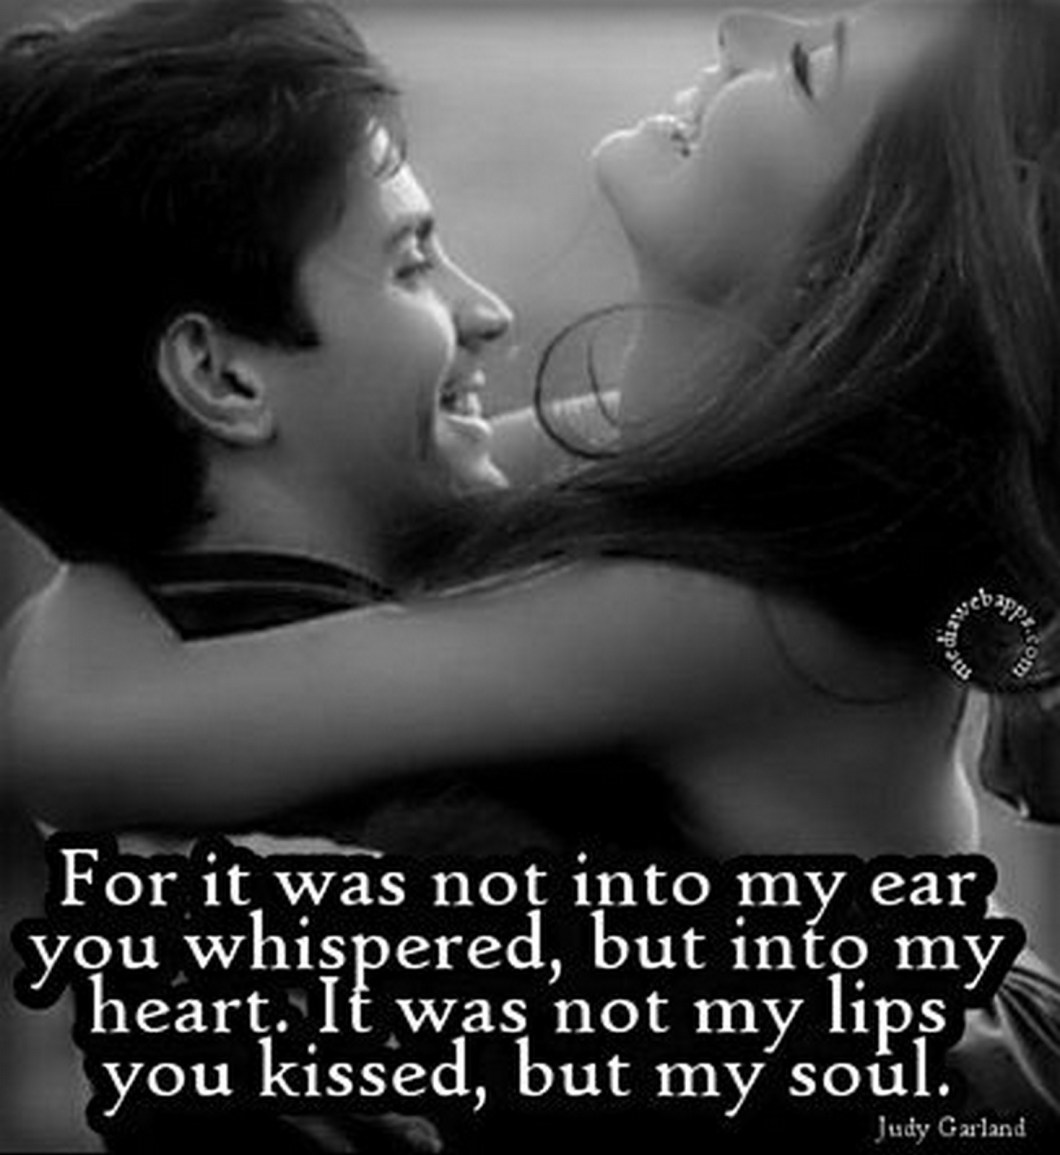 """55 Romantic Quotes - """"For it was not into my ear you whispered, but into my heart. It was not my lips you kissed, but my soul."""" - Judy Garland"""